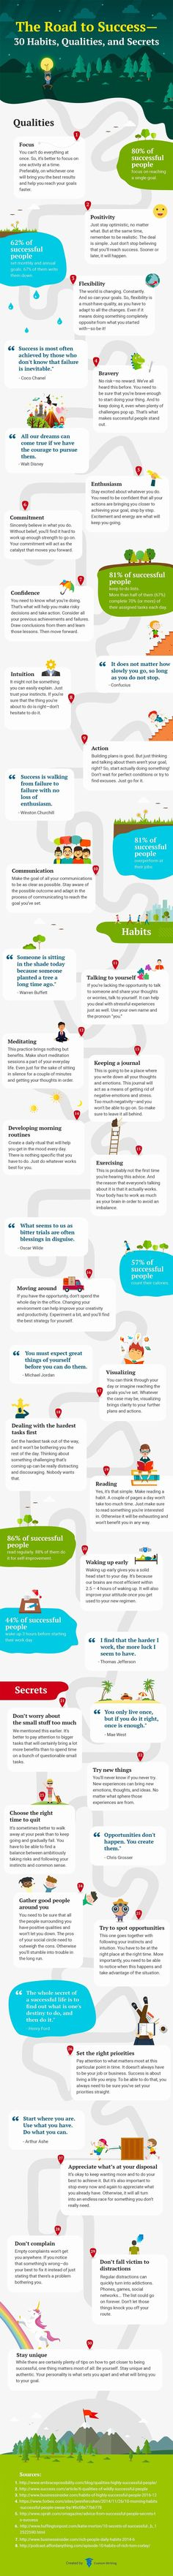 Business Success: 30 Habits, Qualities and Secrets [Infographic]